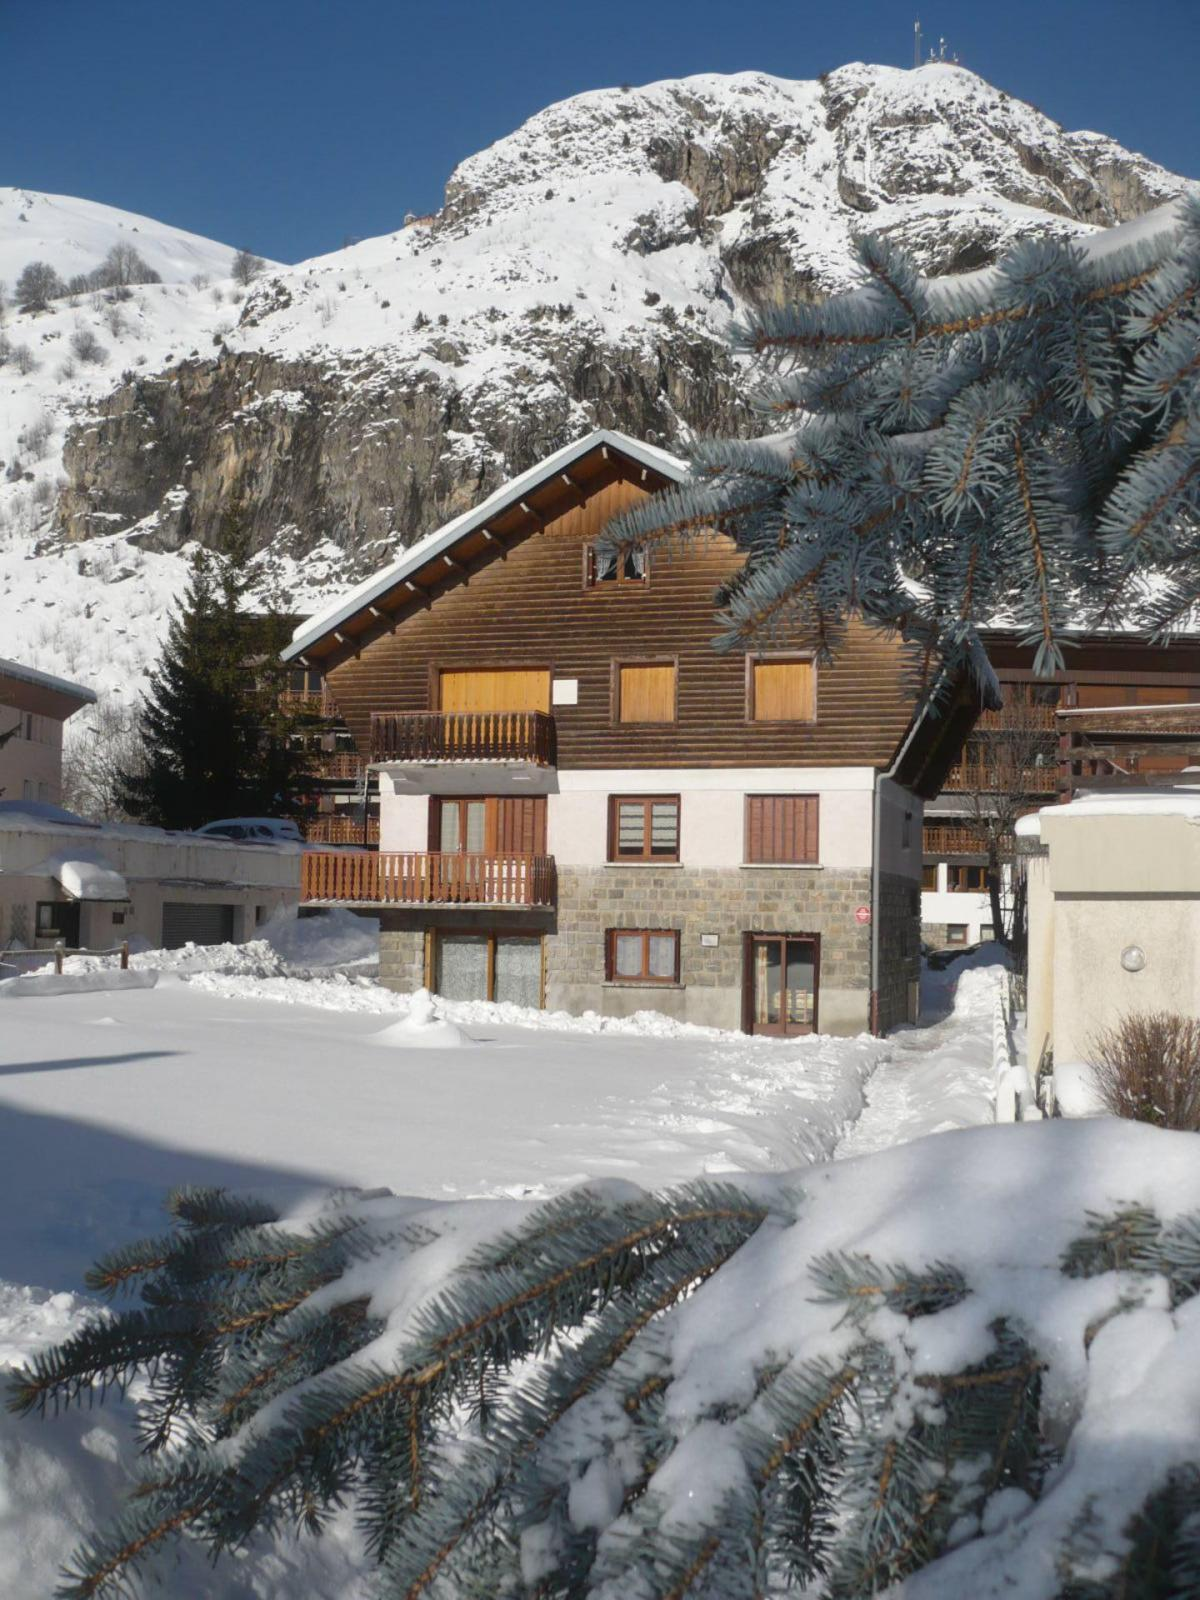 Accommodation Chalet Les Gentianes